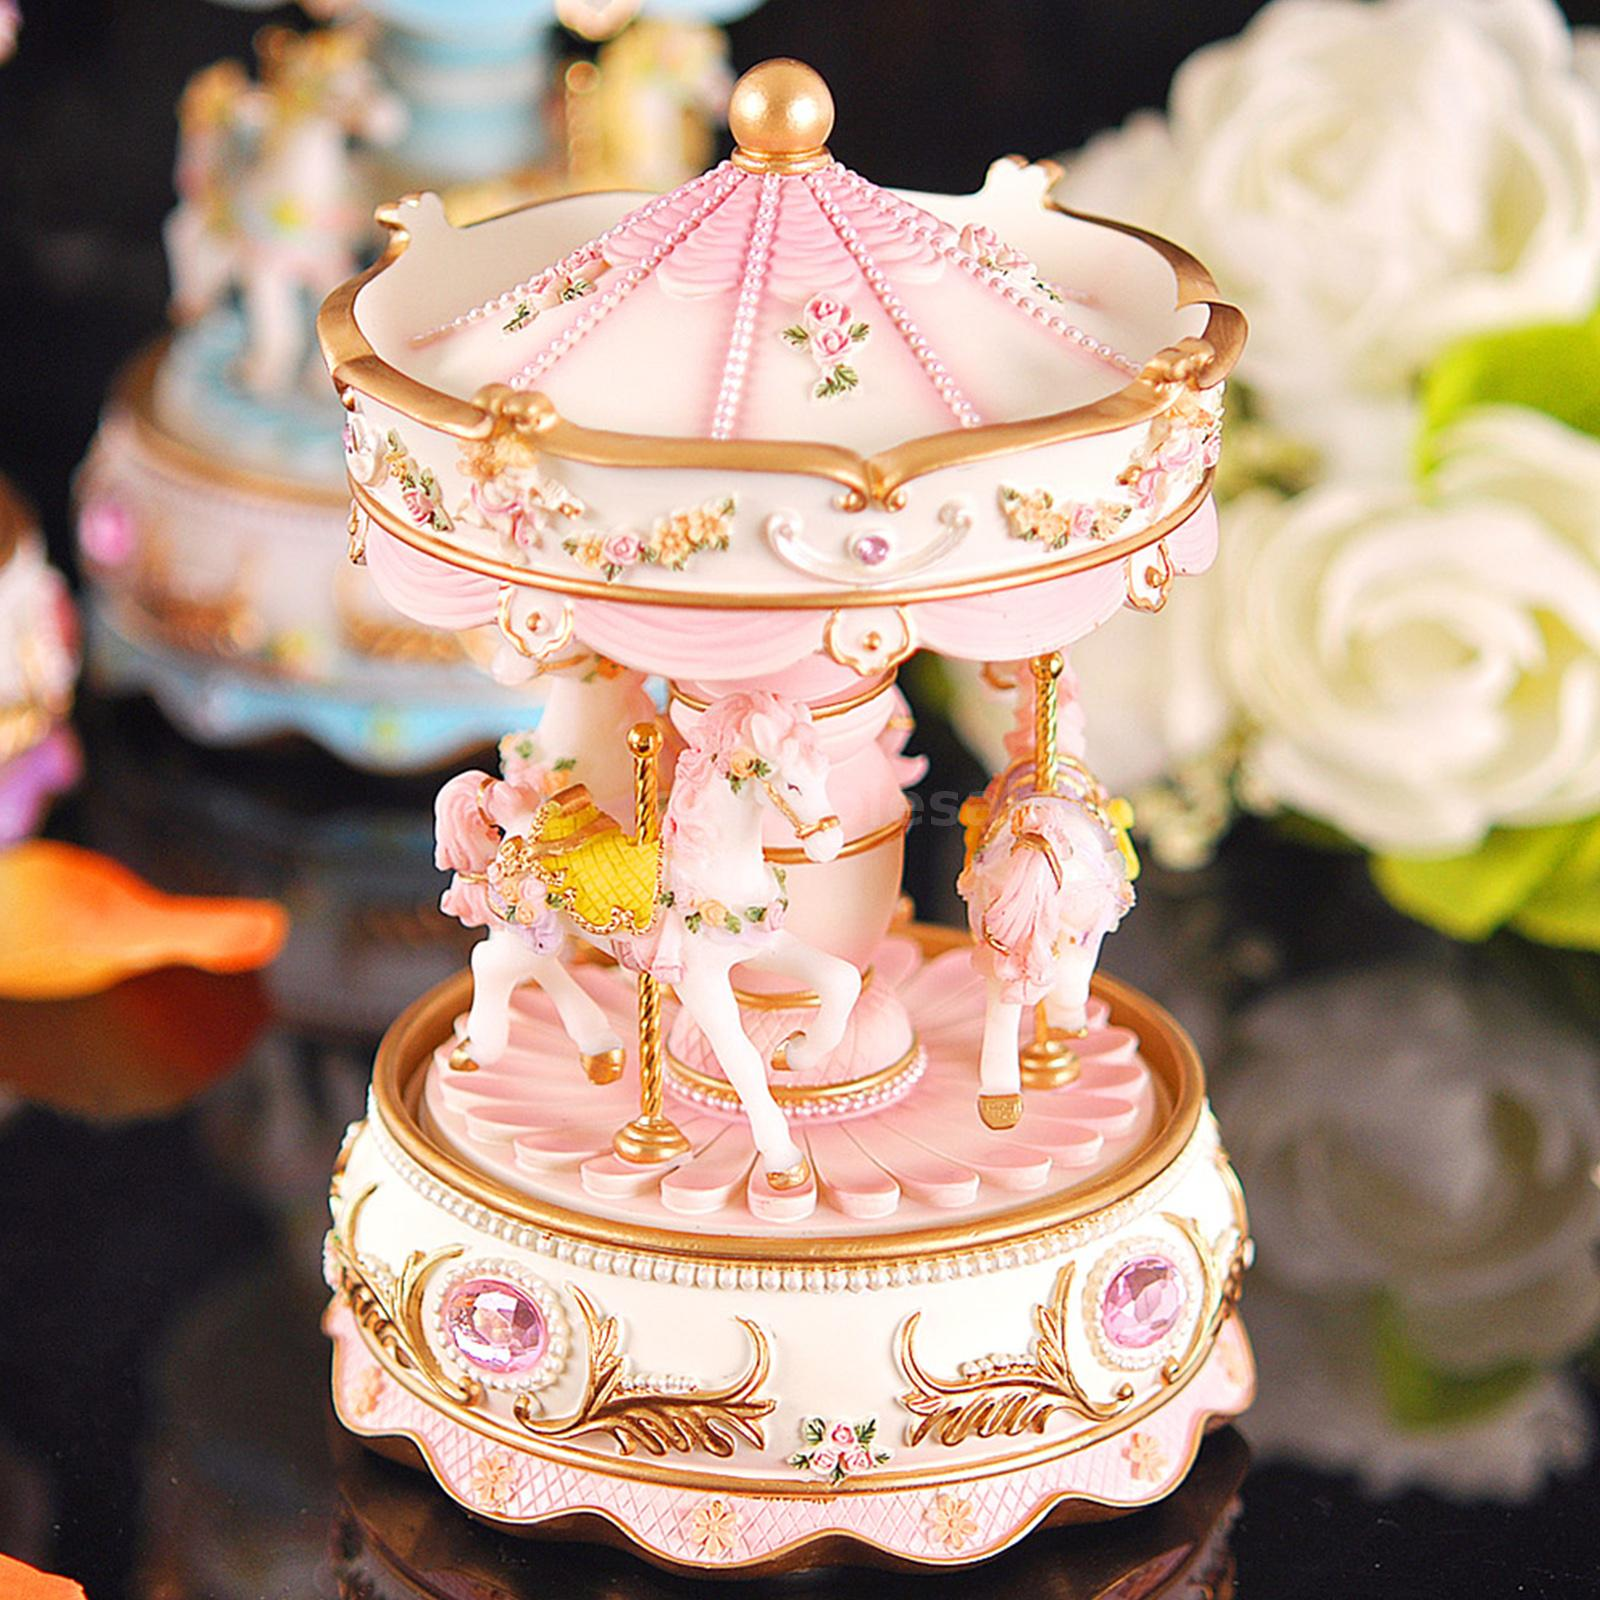 Home Decor Wedding Ornament Carousel Music Box with LED Light Vintage Music Boxes for Christmas Birthday Gift Shipment from USA, Purple Merry-Go-Round Music Box Christmas